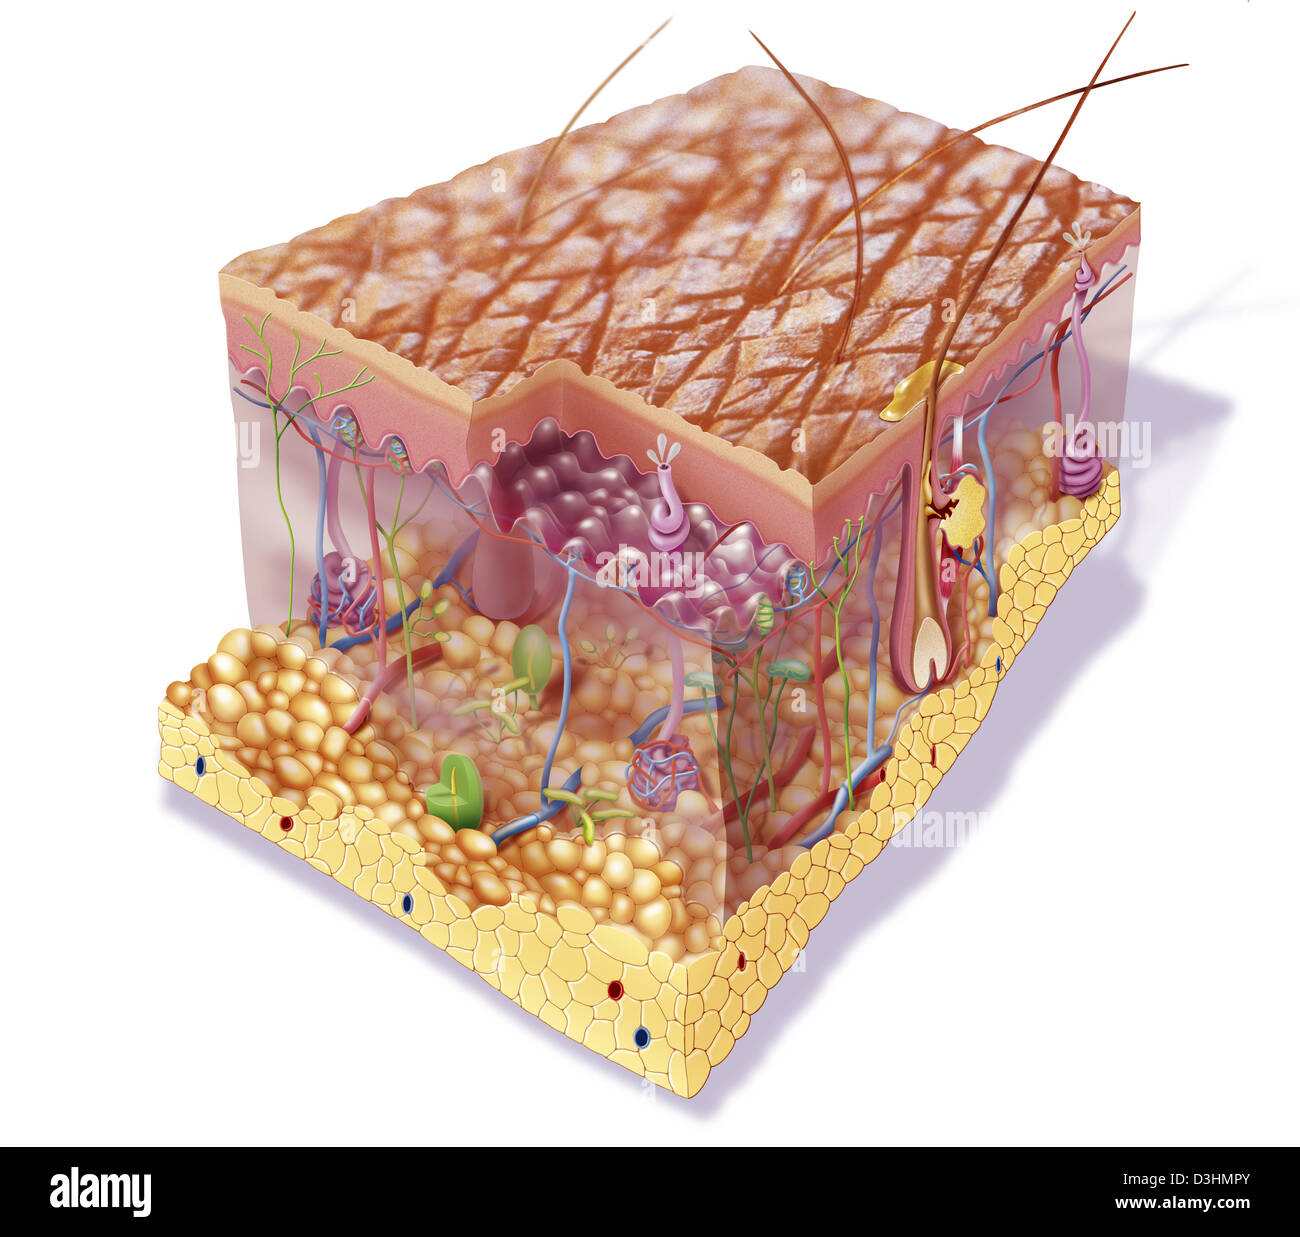 SKIN, ILLUSTRATION - Stock Image